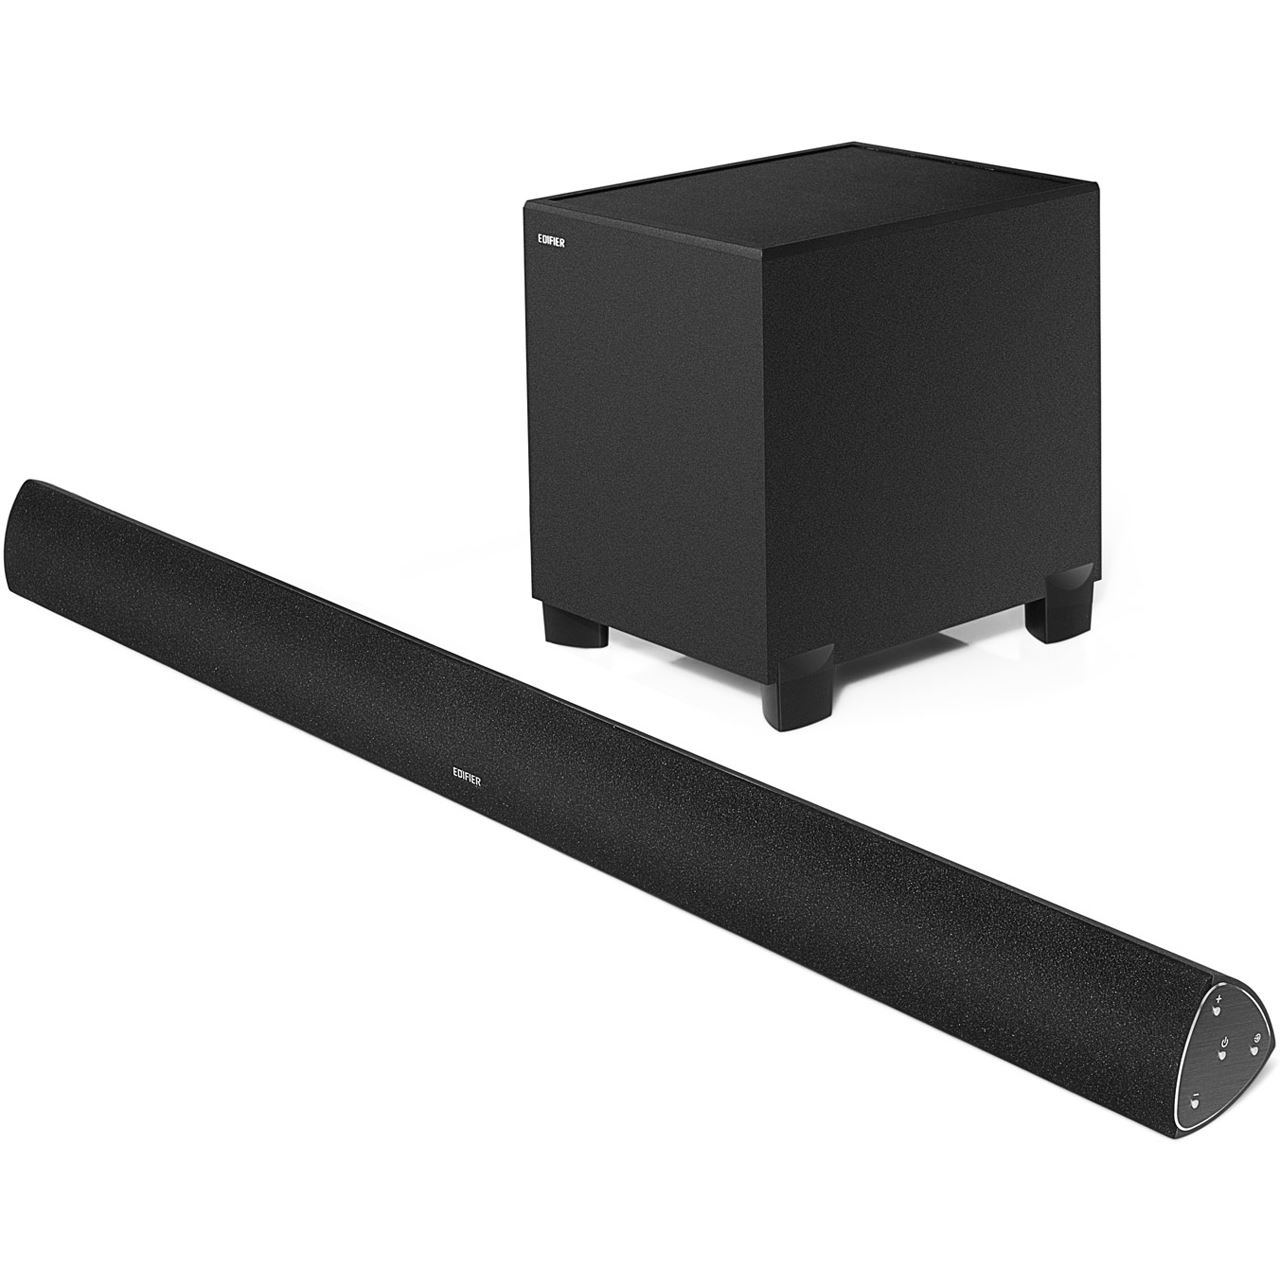 edifier aktivboxen cinesound b7 soundbar 2 1 schwarz boxen hardware notebooks. Black Bedroom Furniture Sets. Home Design Ideas